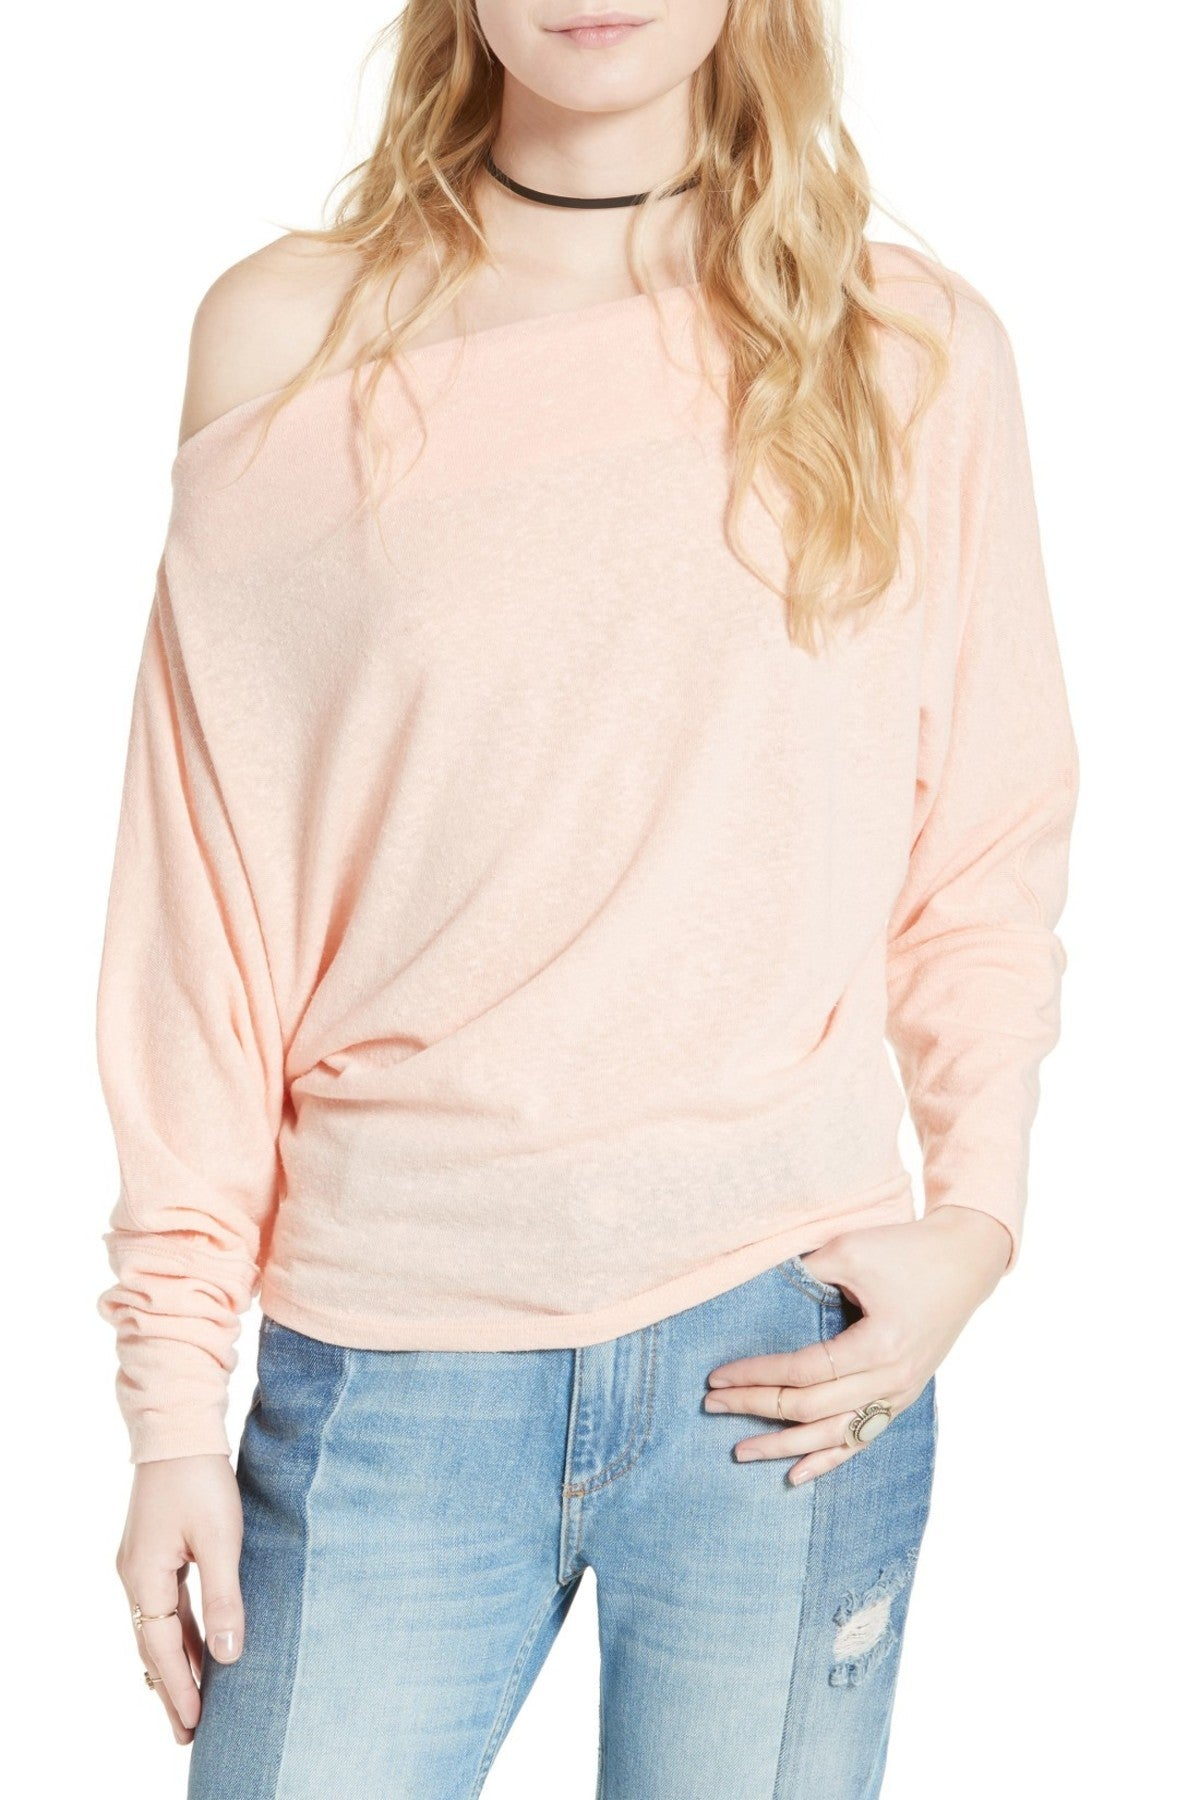 Free People Valencia Slouchy Top Apricot S - Gear Relapse